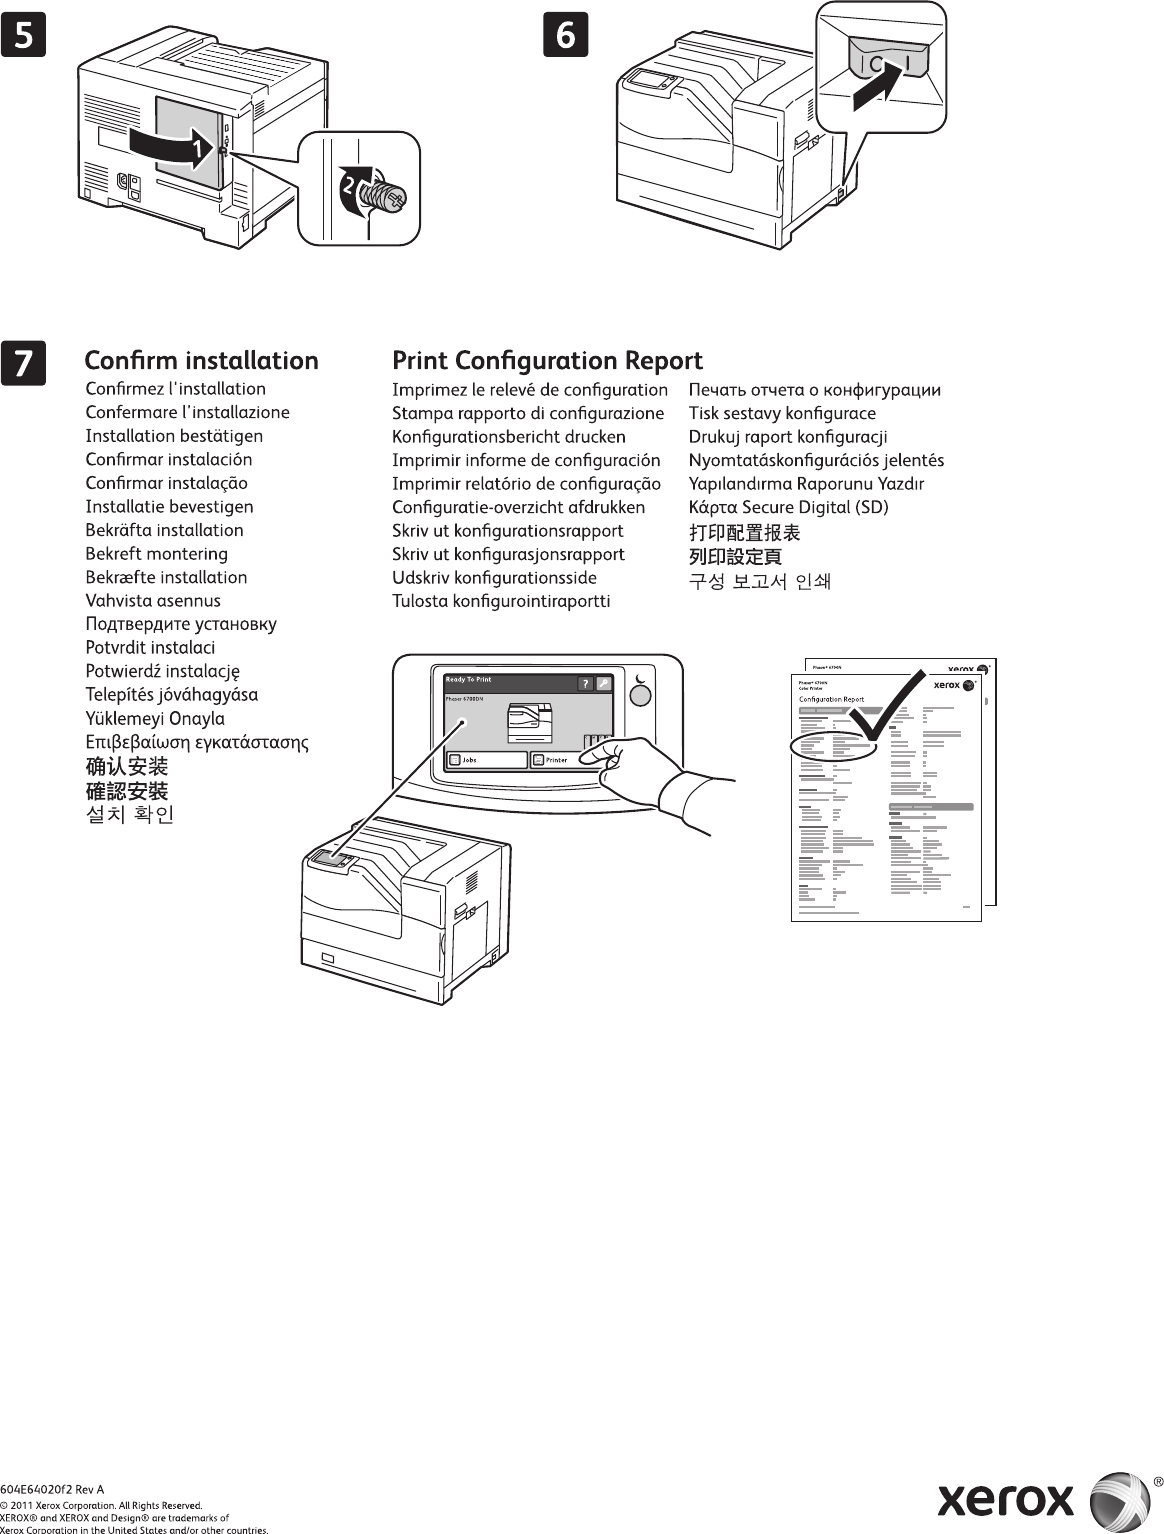 xerox phaser 6700 users manual hard drive replacement instruction rh usermanual wiki Cox Remote 8820 User Manual ResMed S9 User Manual